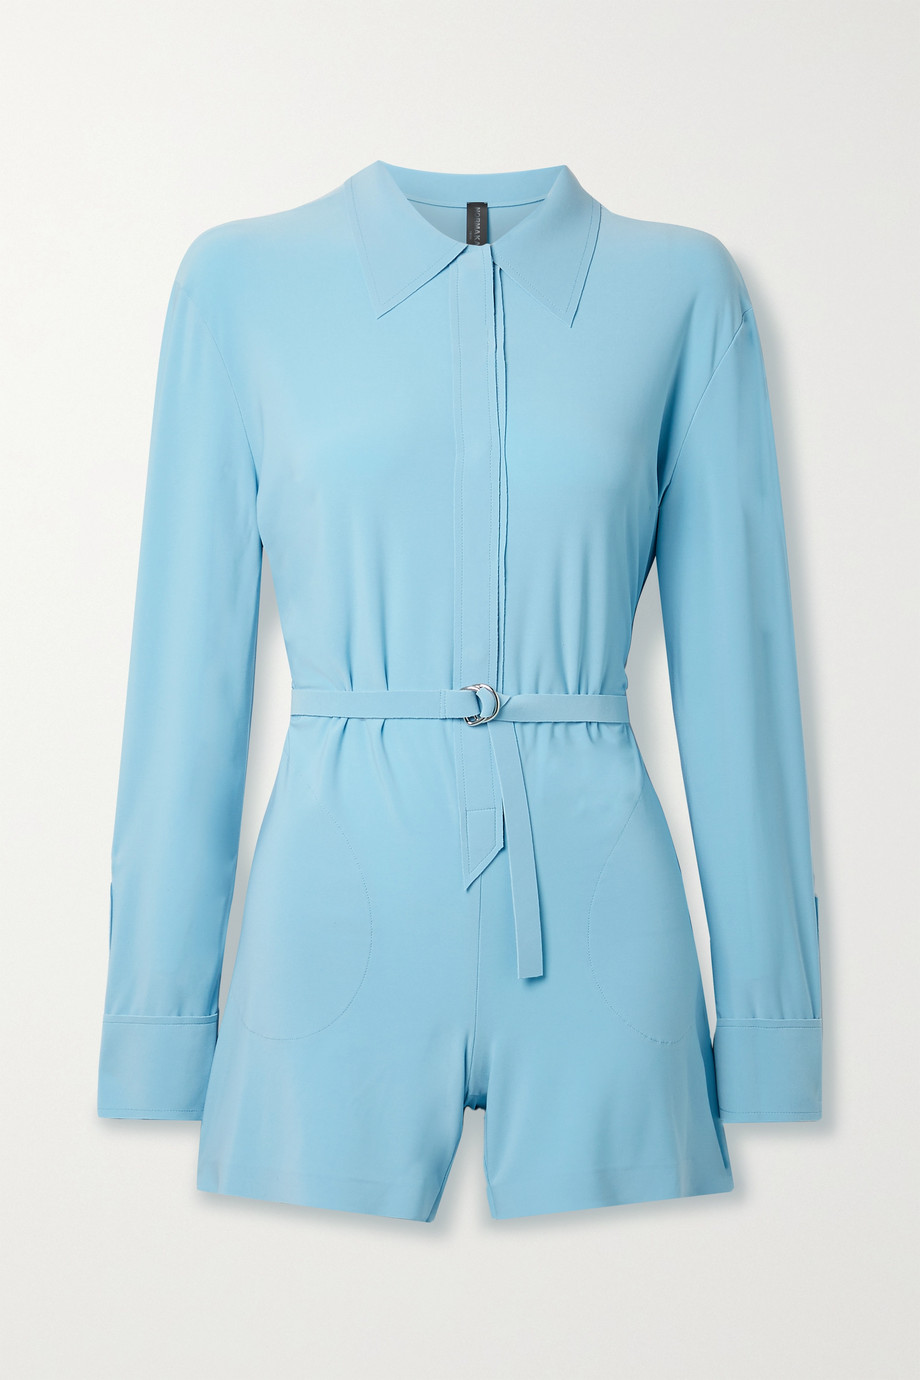 NORMA KAMALI Belted stretch-jersey playsuit